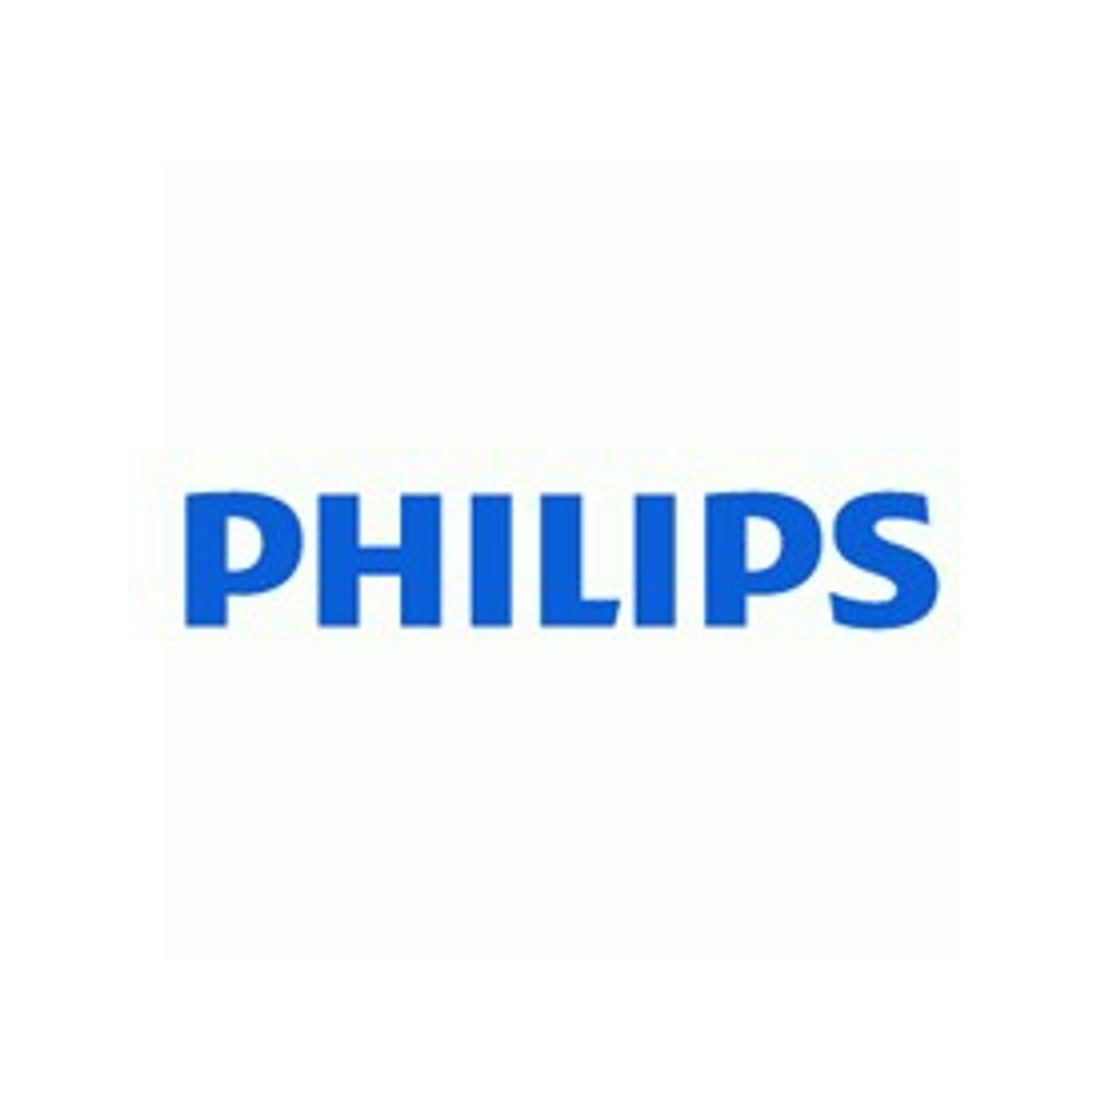 Philips Trainers & Supplies